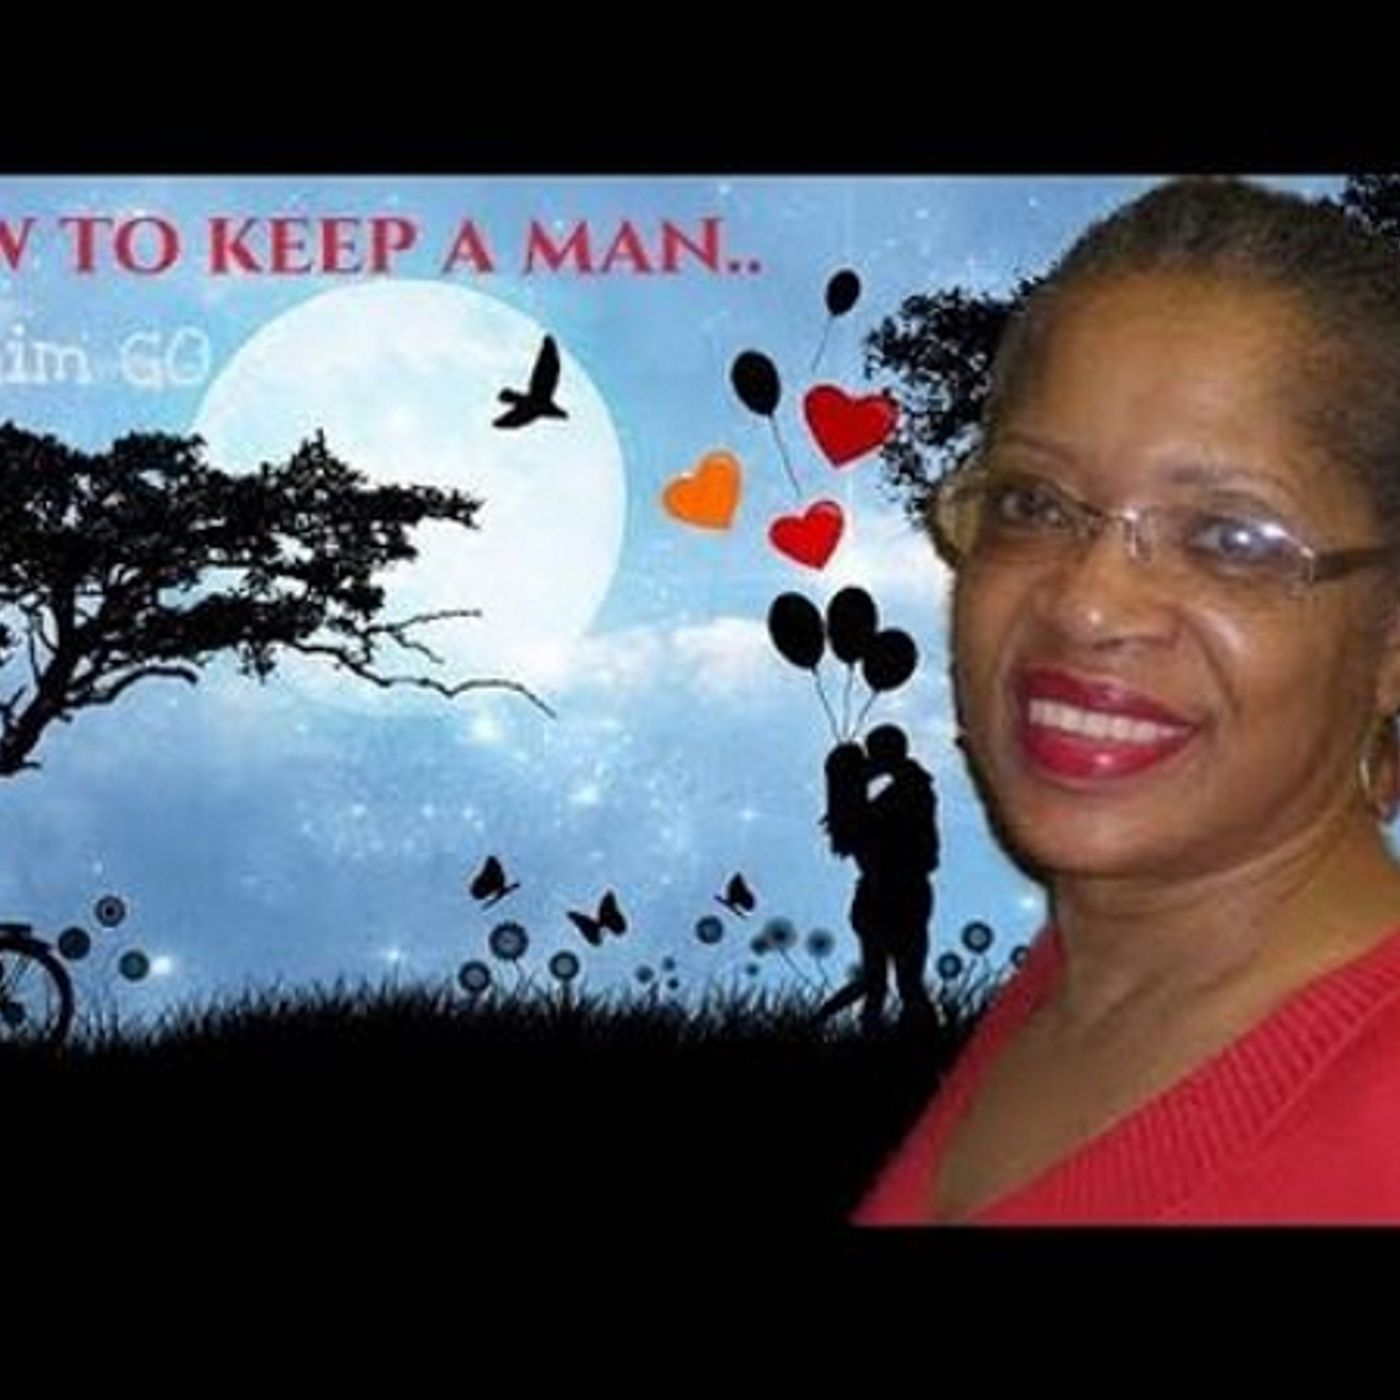 If You Want To Keep A Man, Let Him Go!   - Joyce Fields